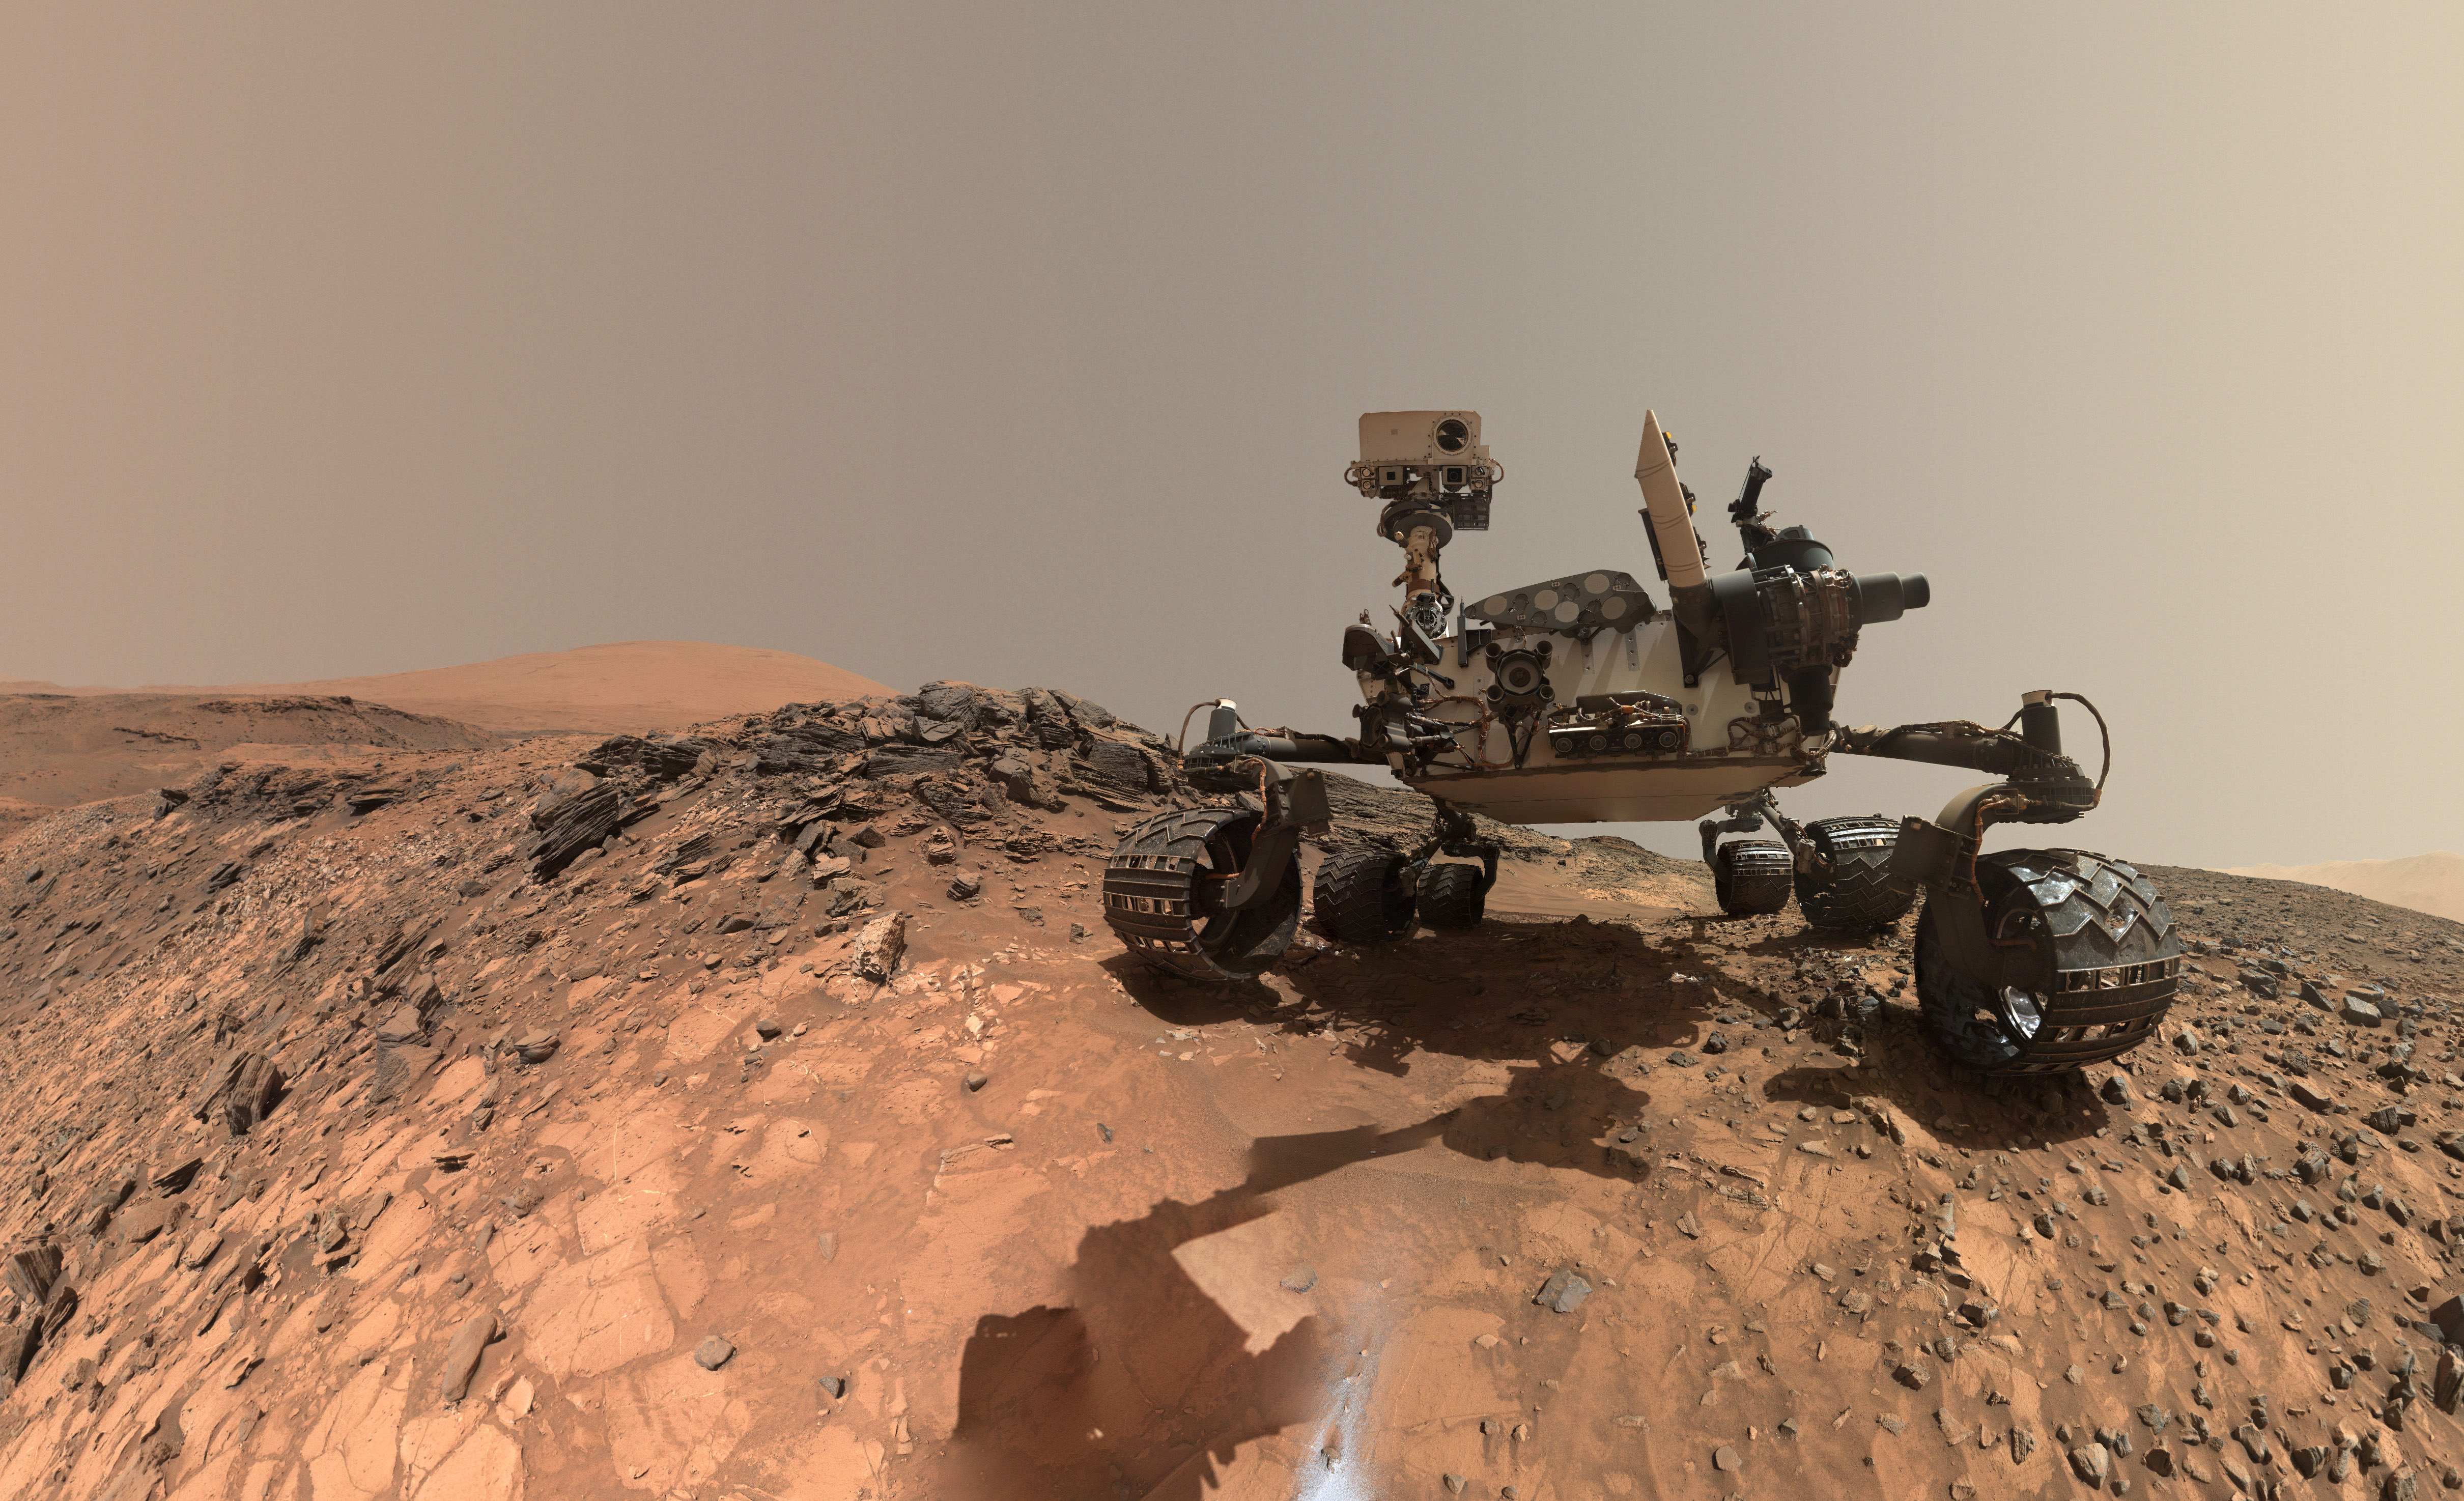 The Mars Rover has captured numerous interesting objects on the Red Planet's surface.